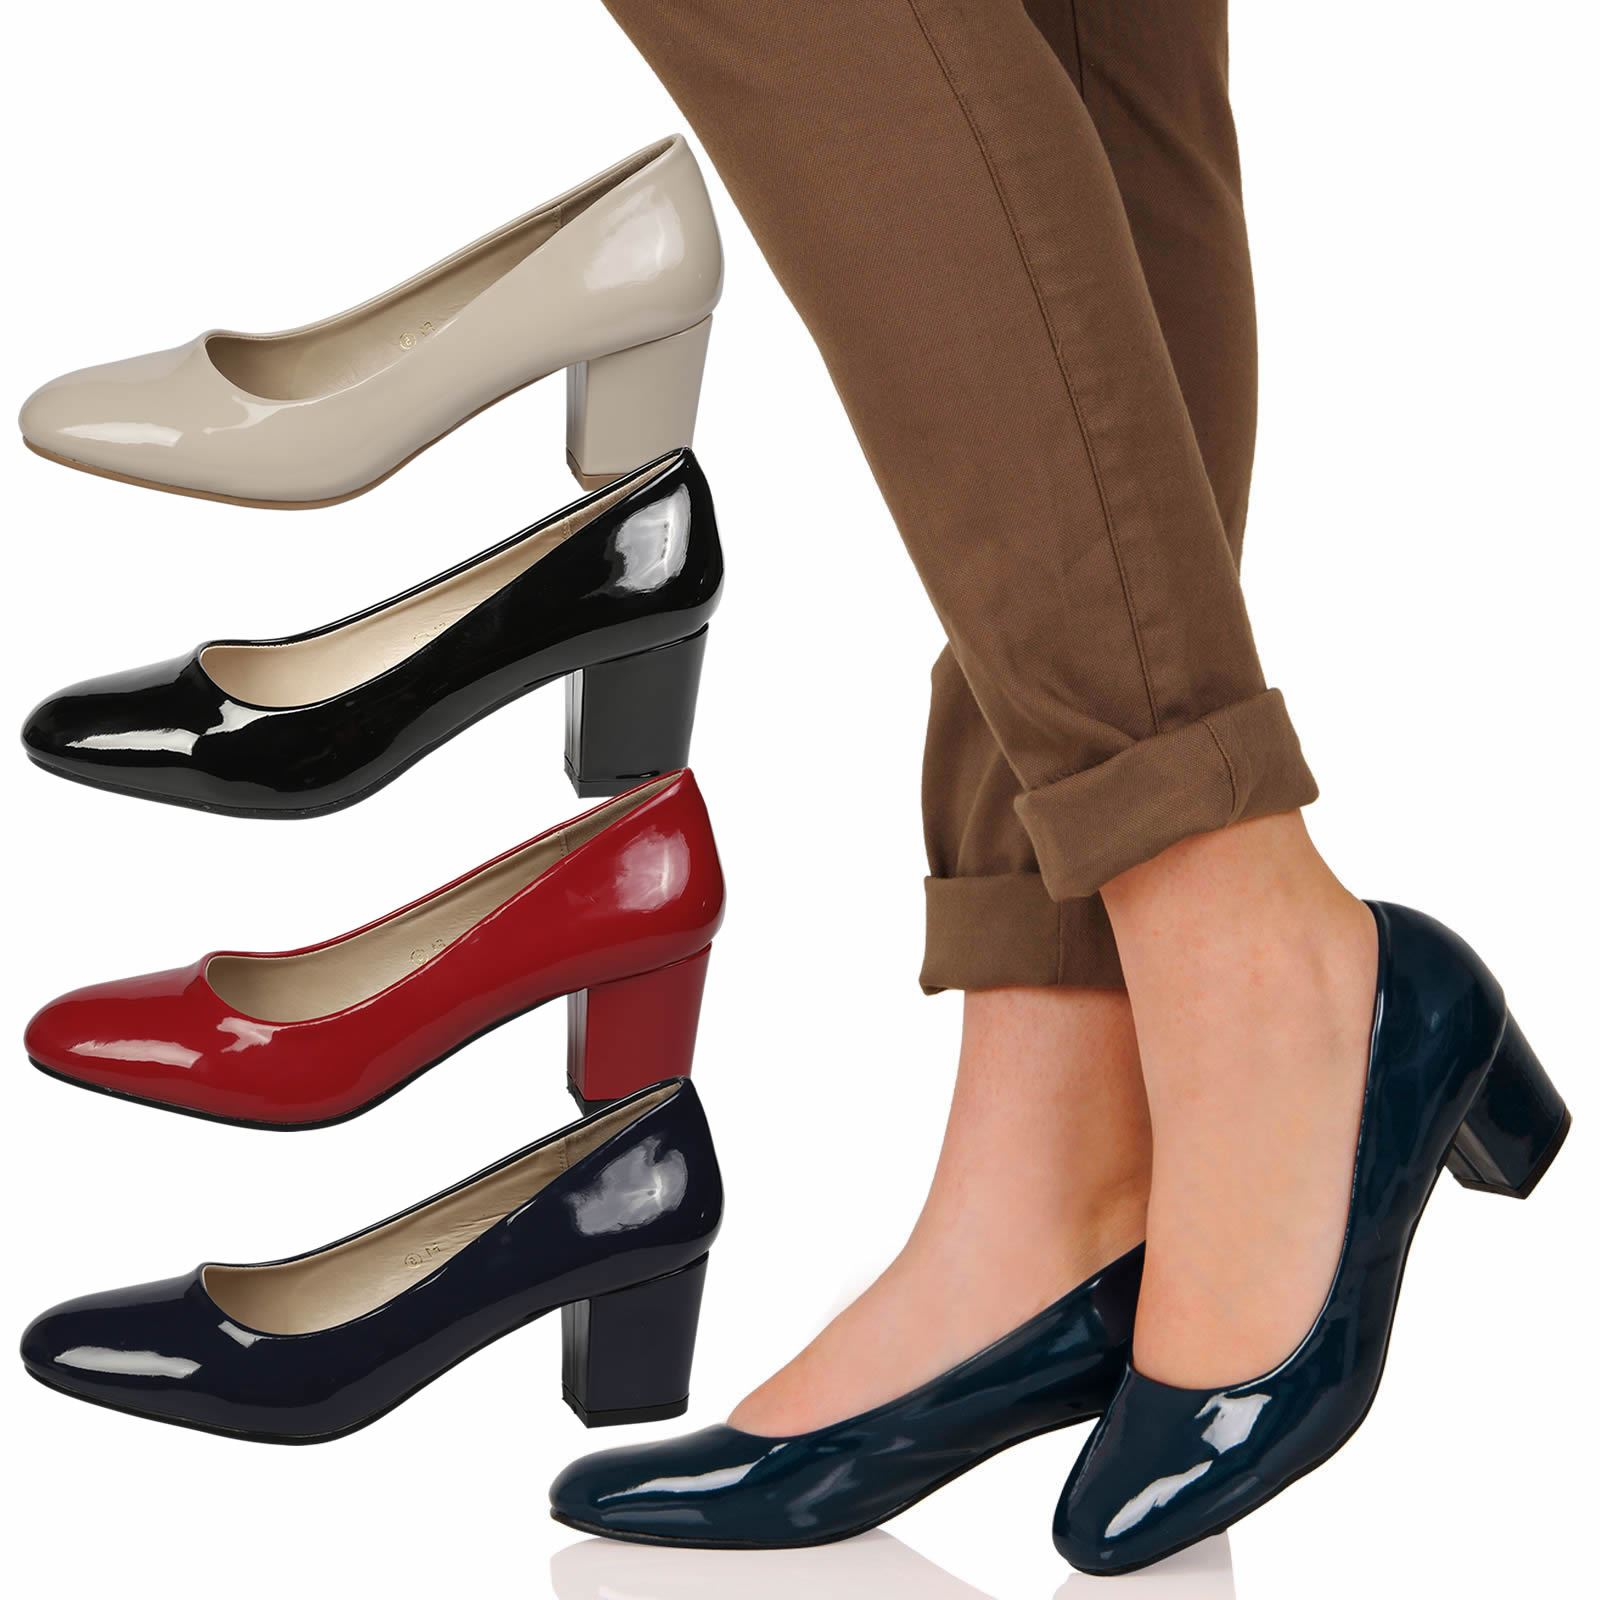 859adbc89f Details about WOMENS SHOES LADIES LOW CHUNKY BLOCK HEELS ROUND TOE COURT  OFFICE WORK NEW SIZE